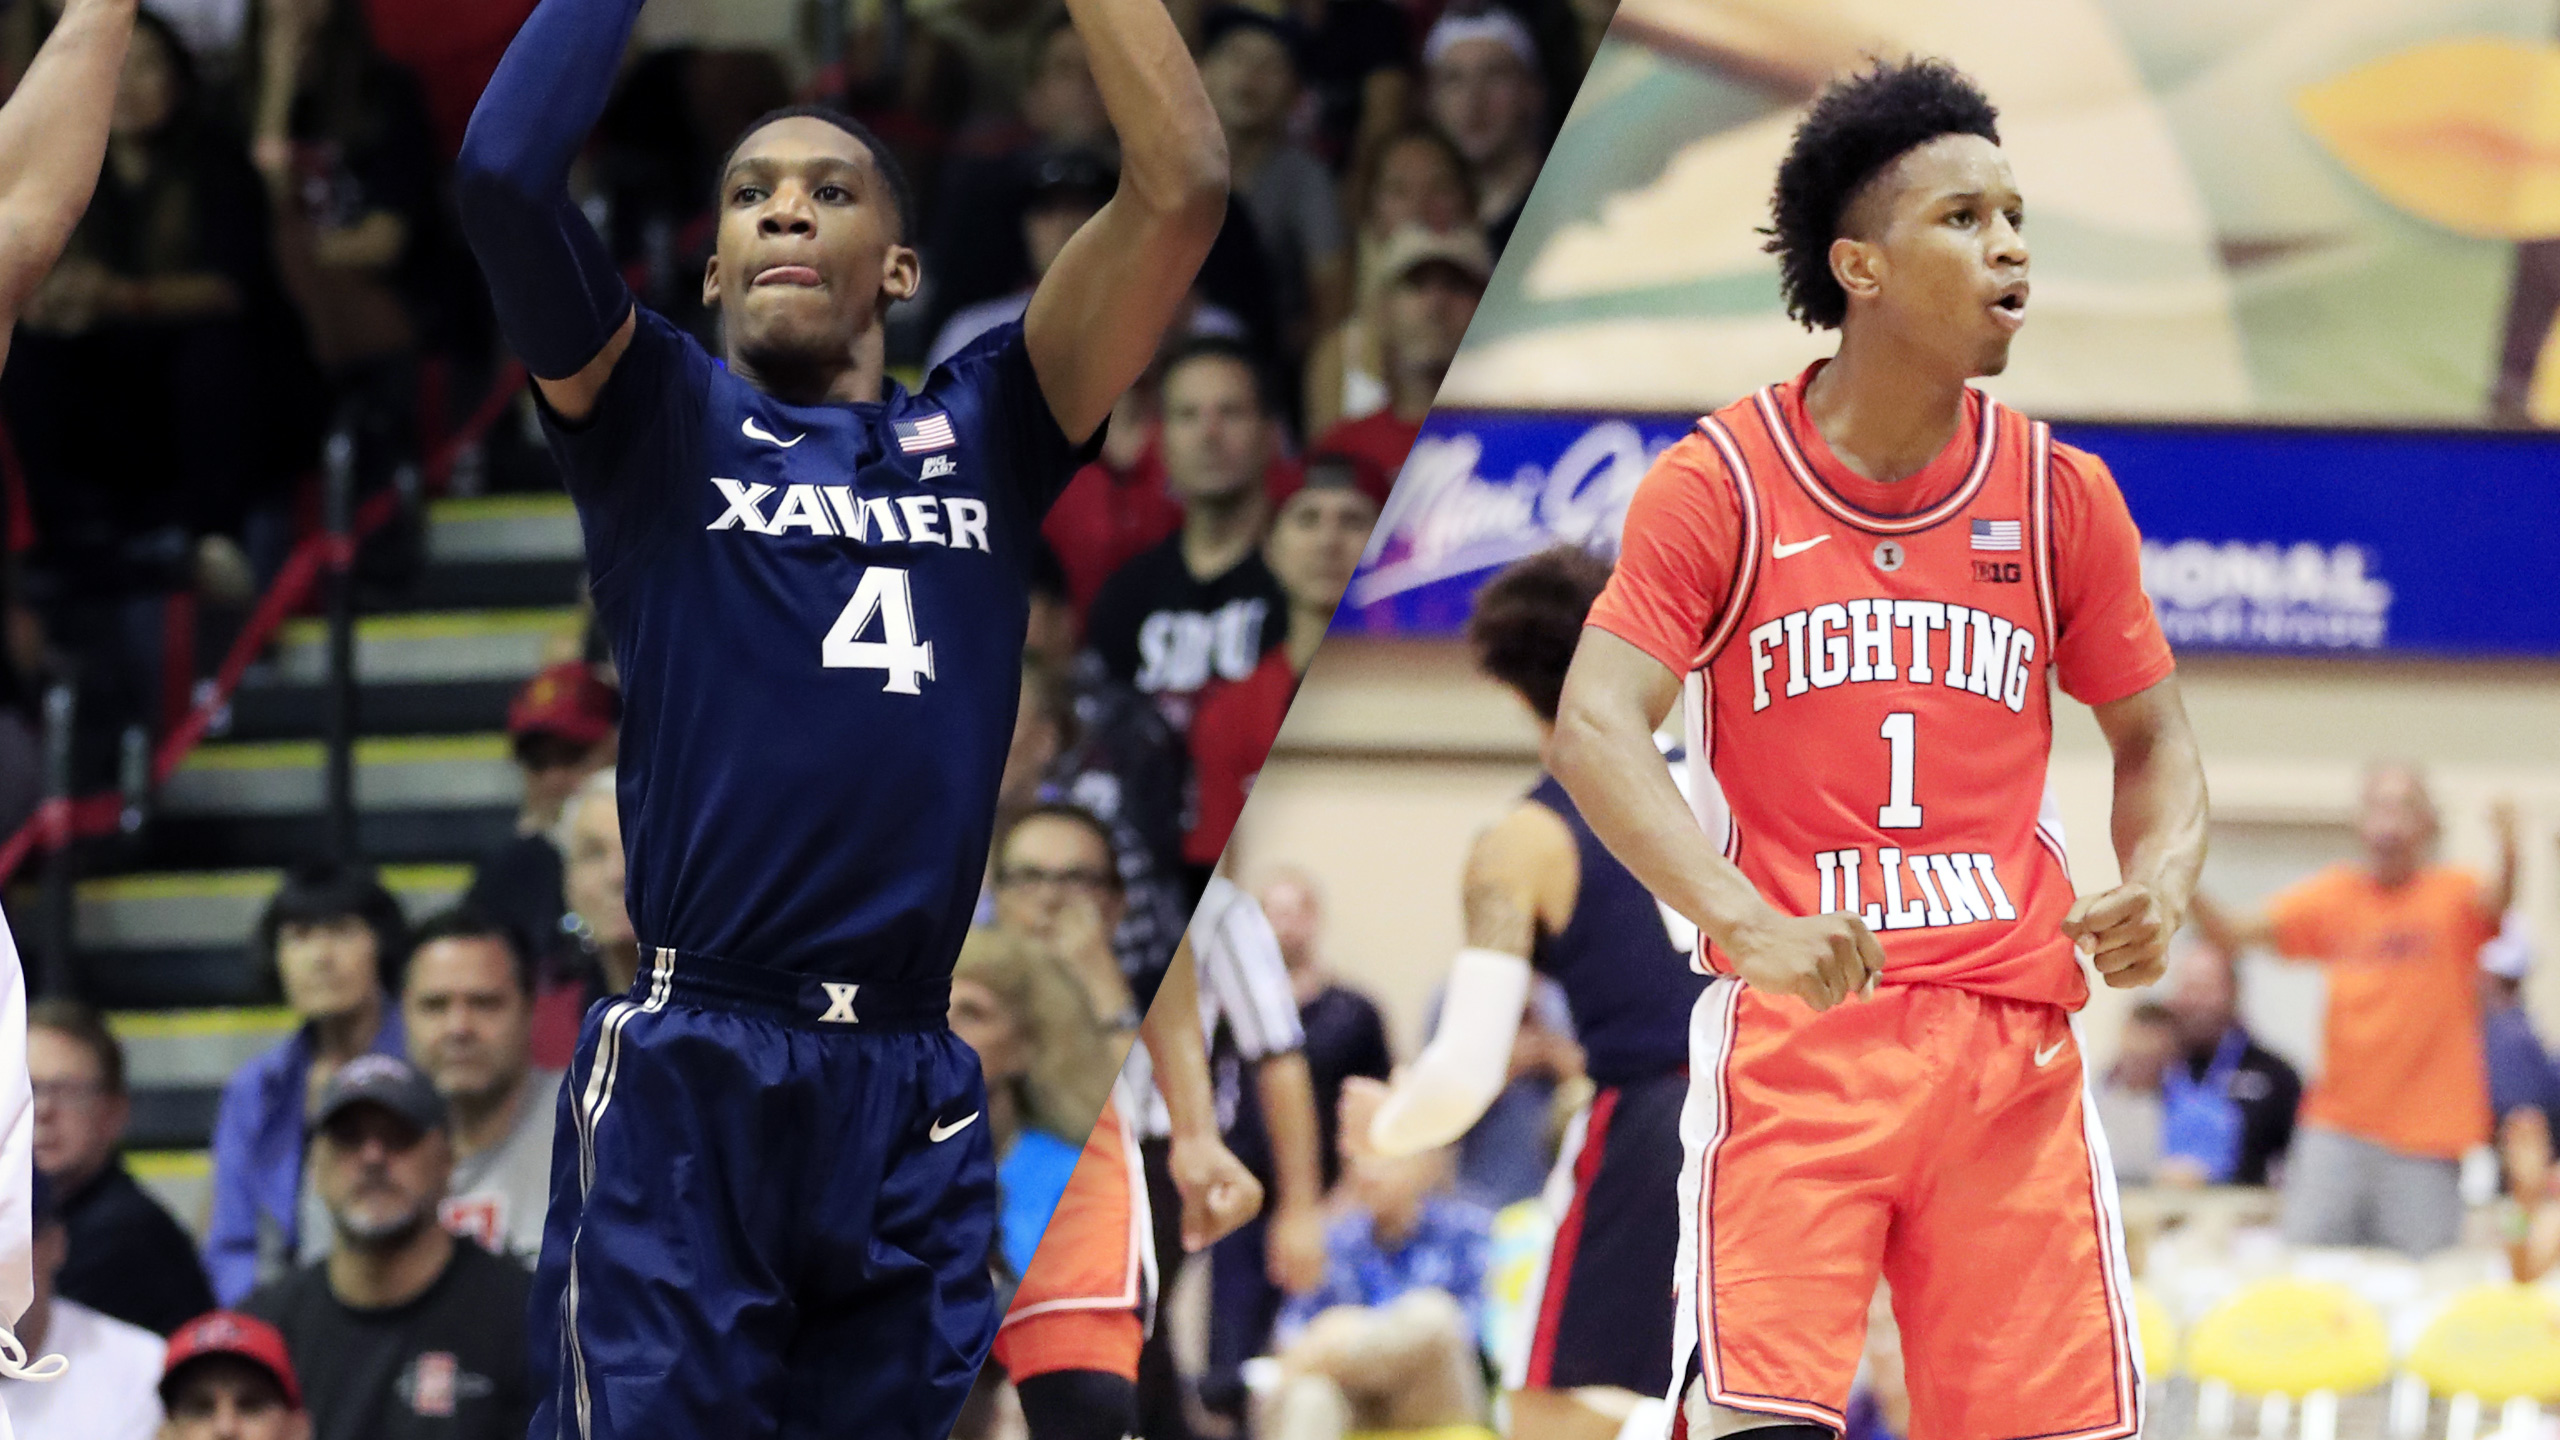 Xavier vs. Illinois (7th Place Game)